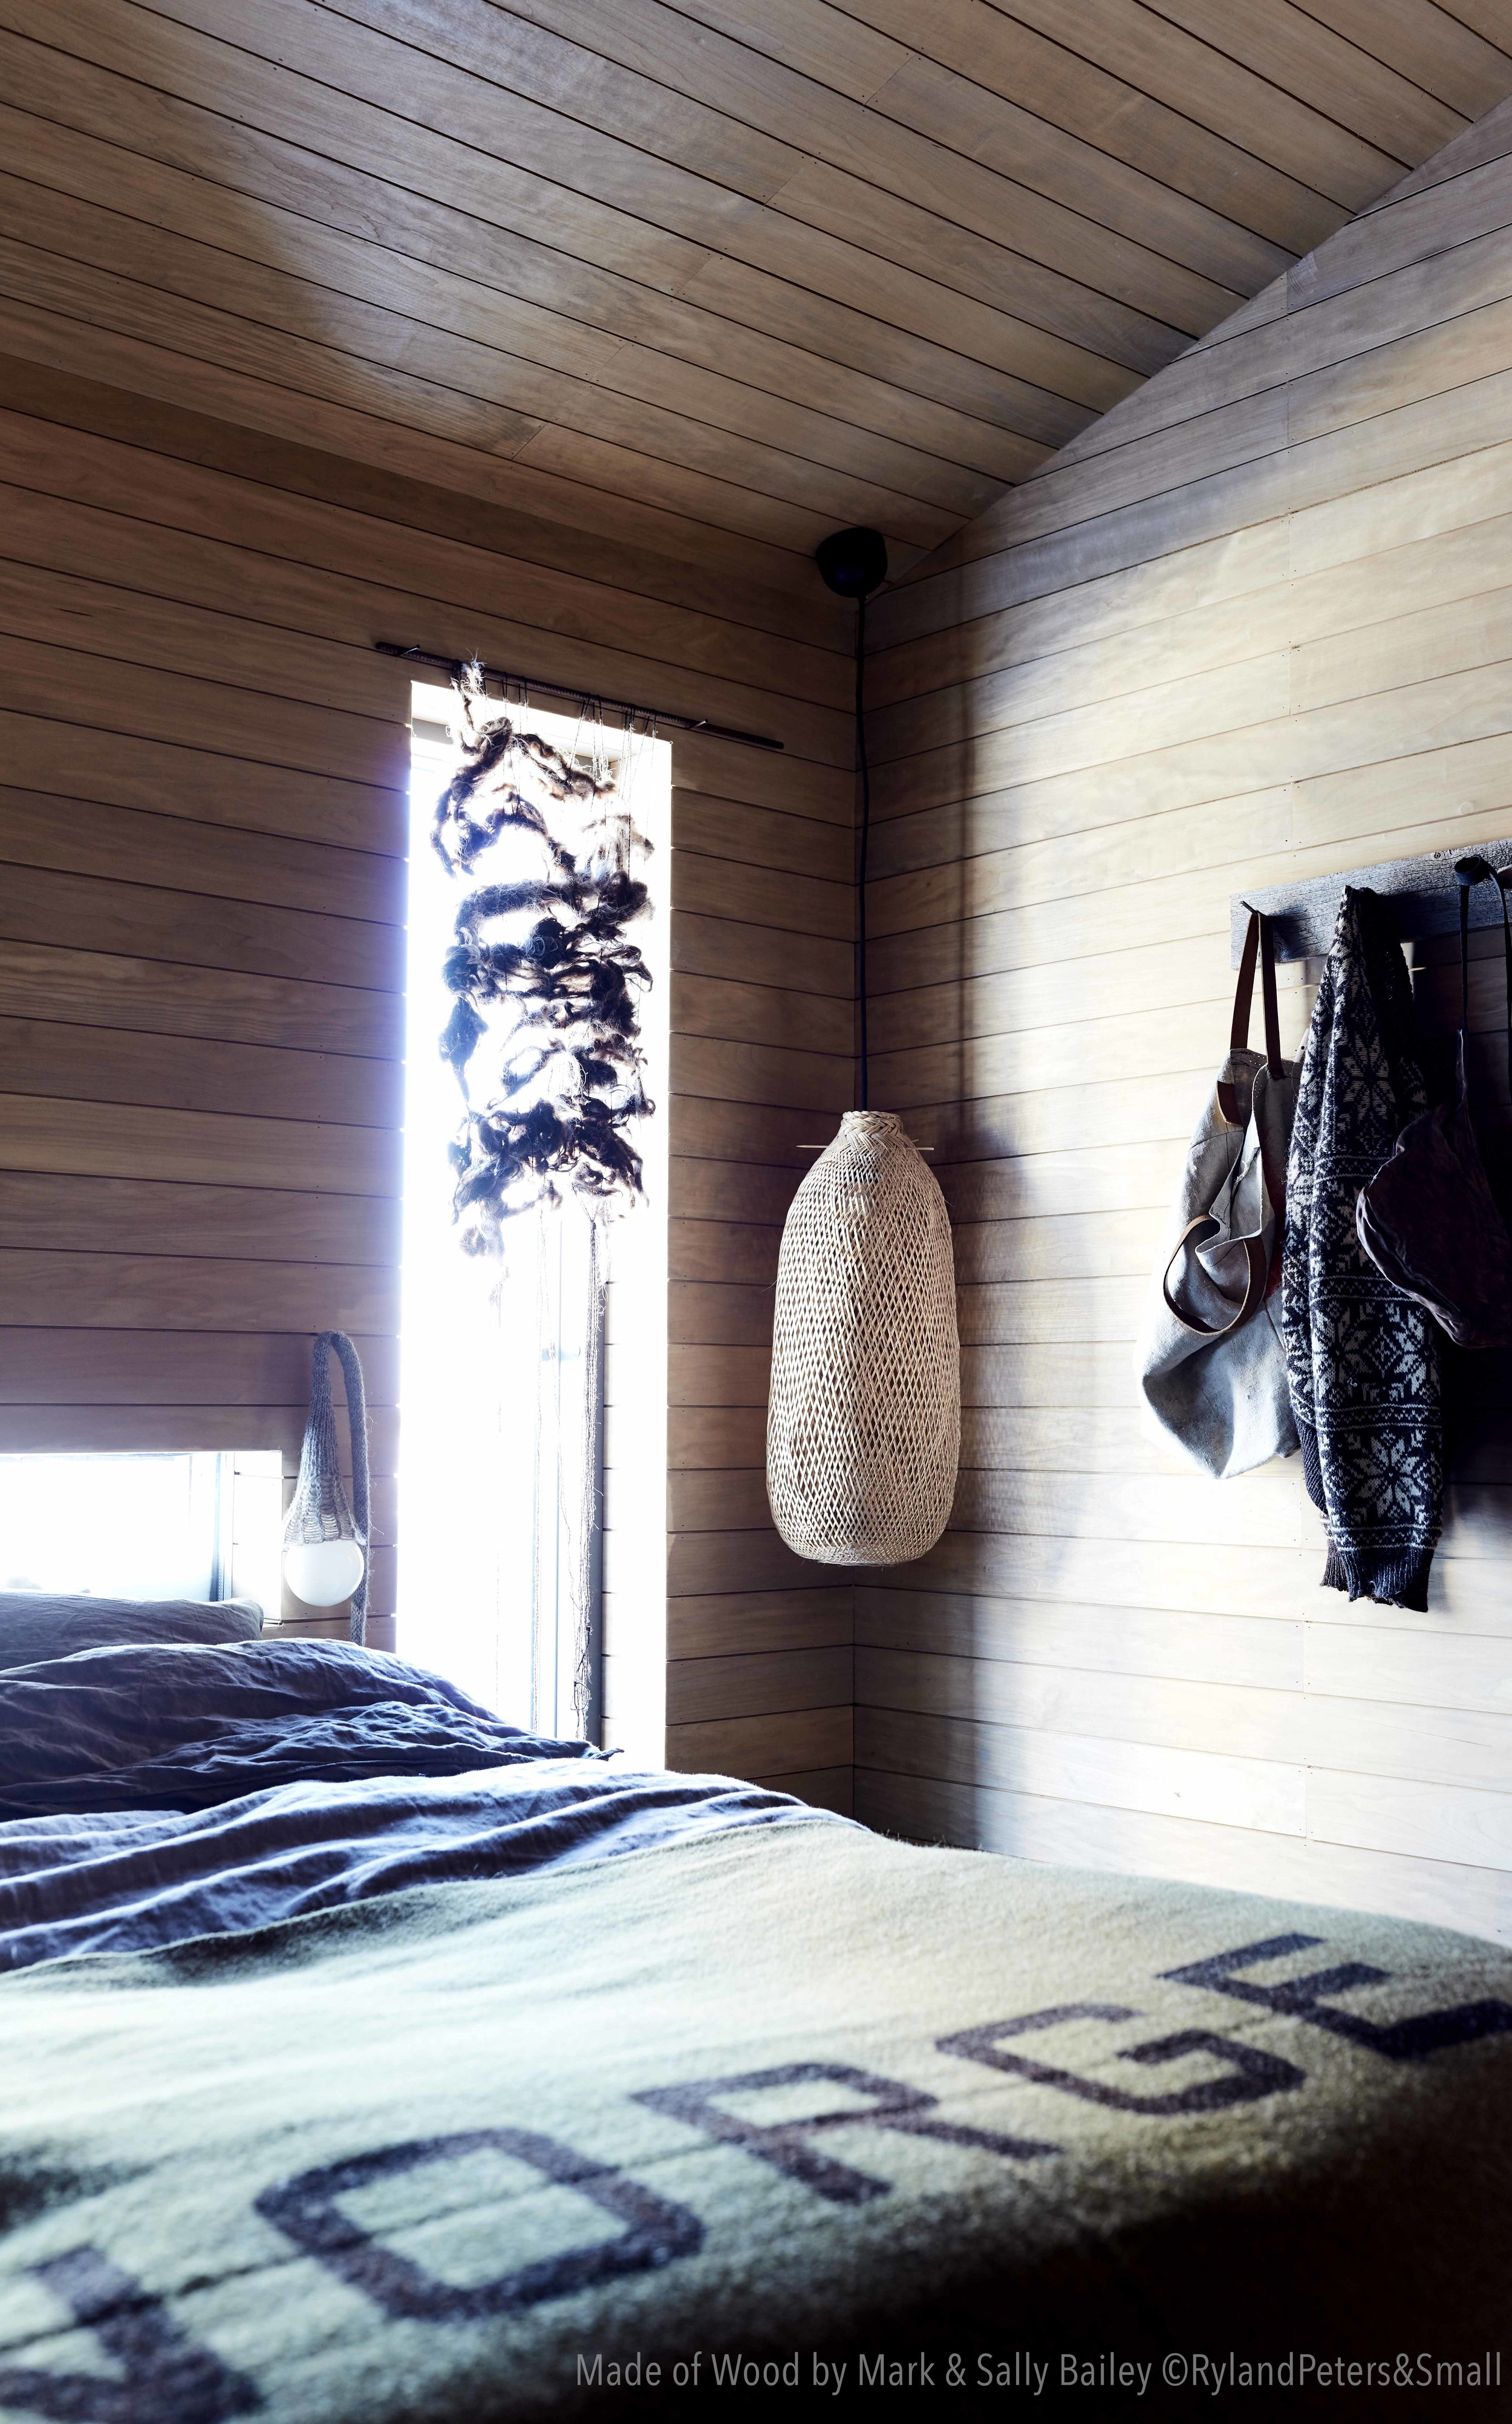 """Our cabin bedroom. Photo from the book """"Made of Wood"""" by Mark og Sally Bailey, photo by Debi Treloar, copyright Ryland Peters & Small."""